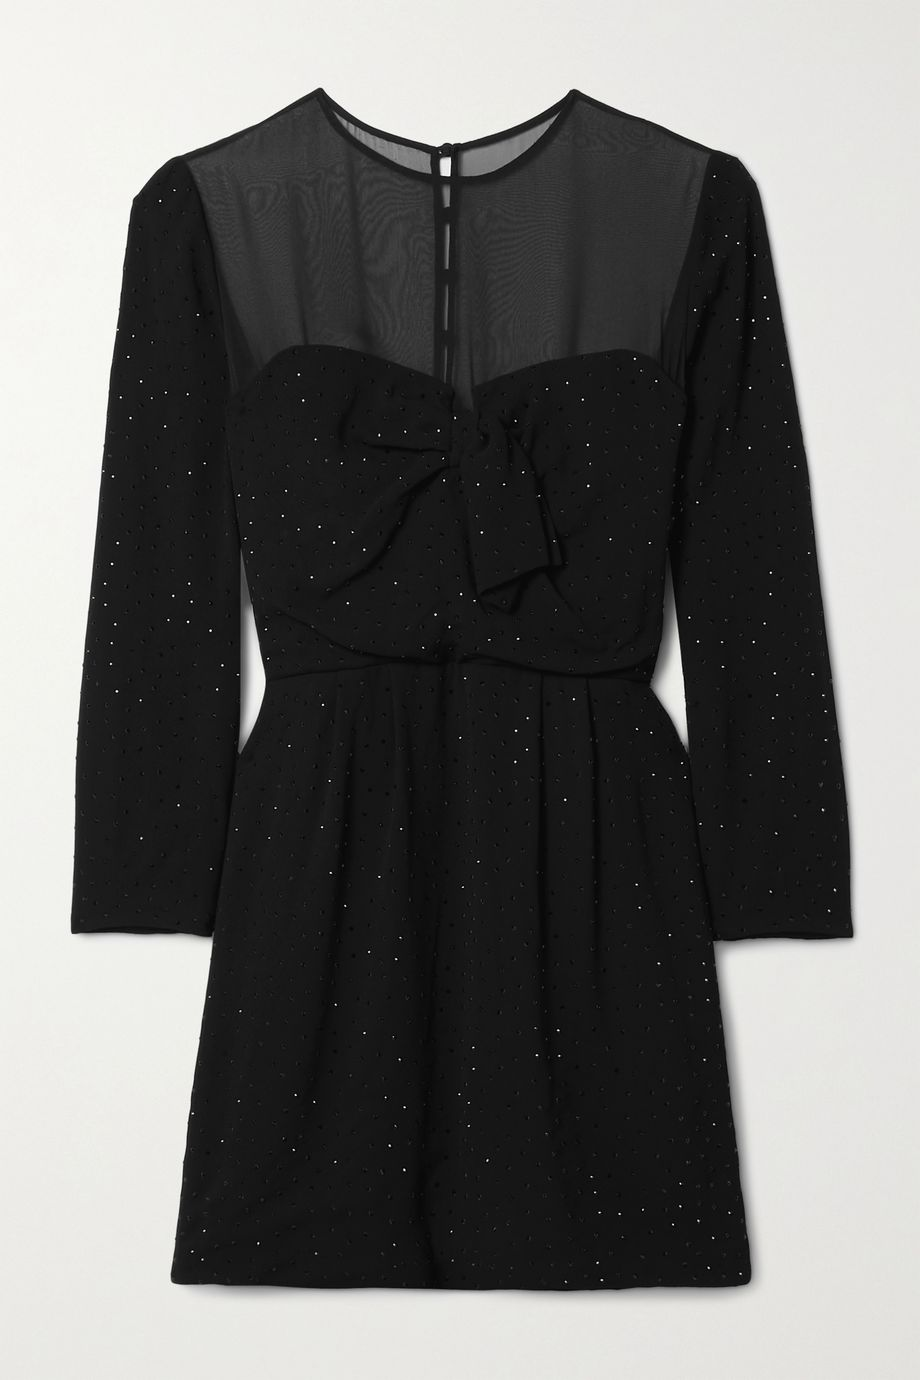 SAINT LAURENT Chiffon-trimmed crystal-embellished crepe mini dress